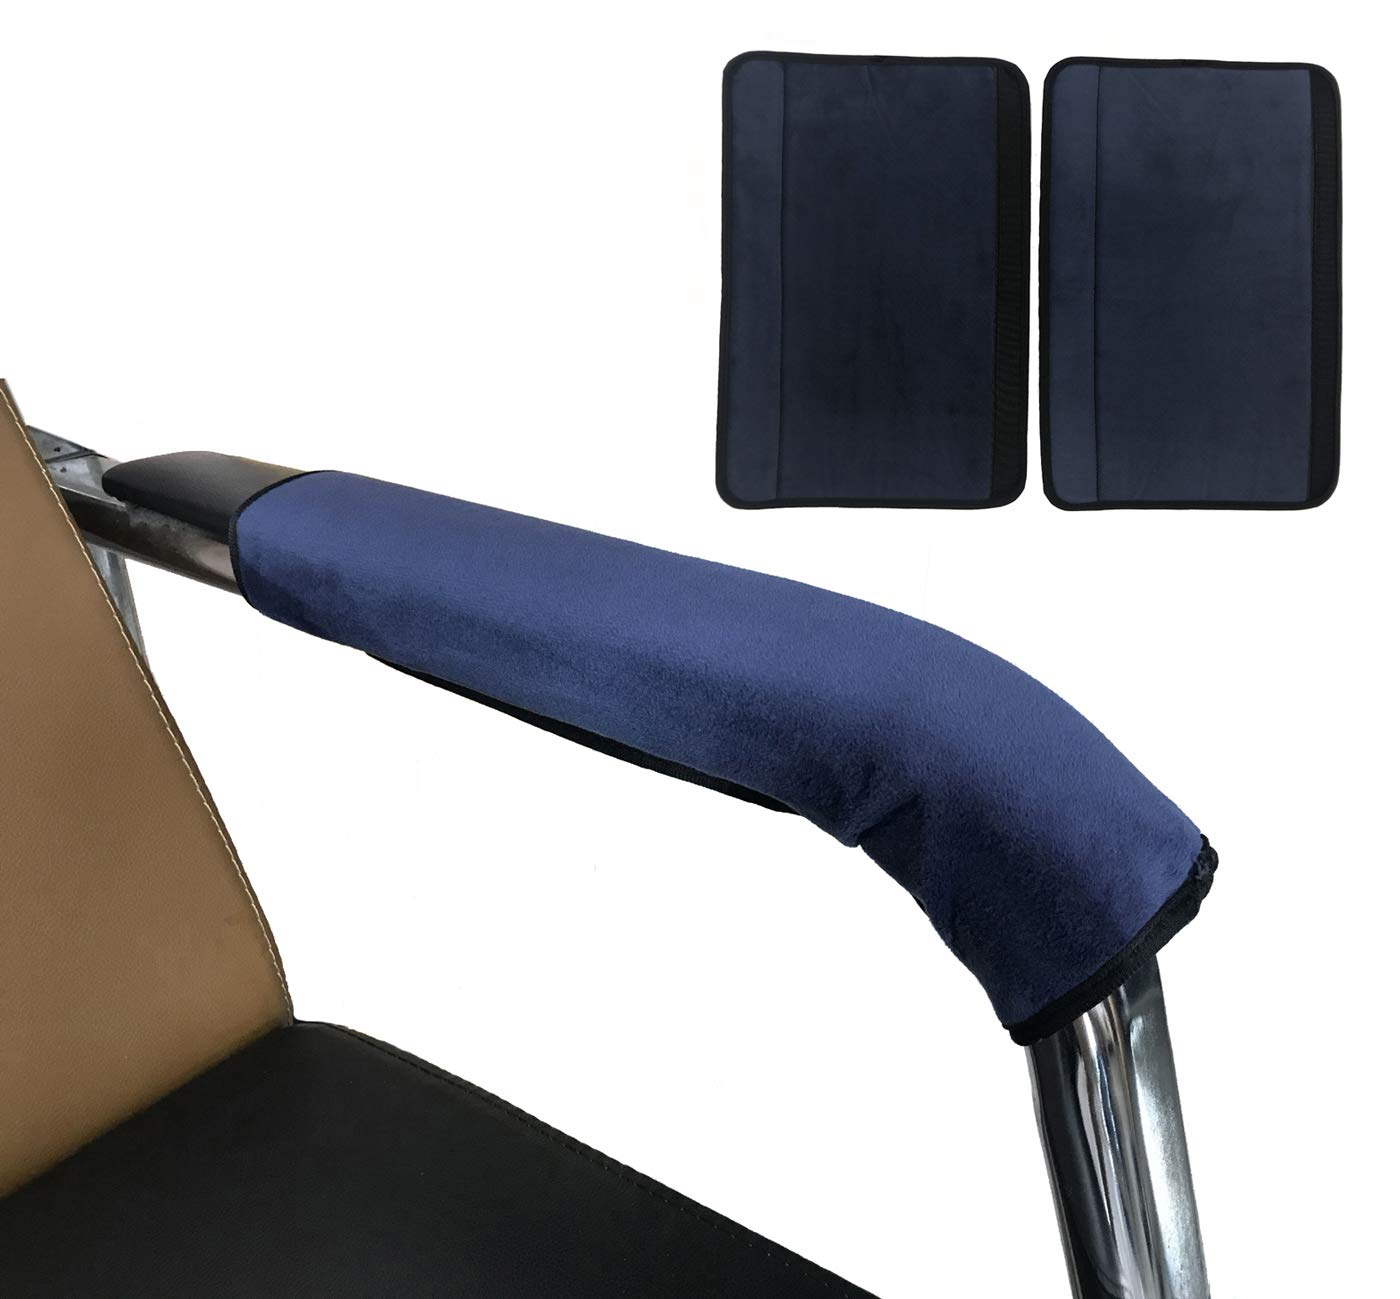 Wakaka 2 Pieces Office Home Polyester Removable Durable Machine Washable Office Chair Armrest Slipcovers Covers … (Blue)